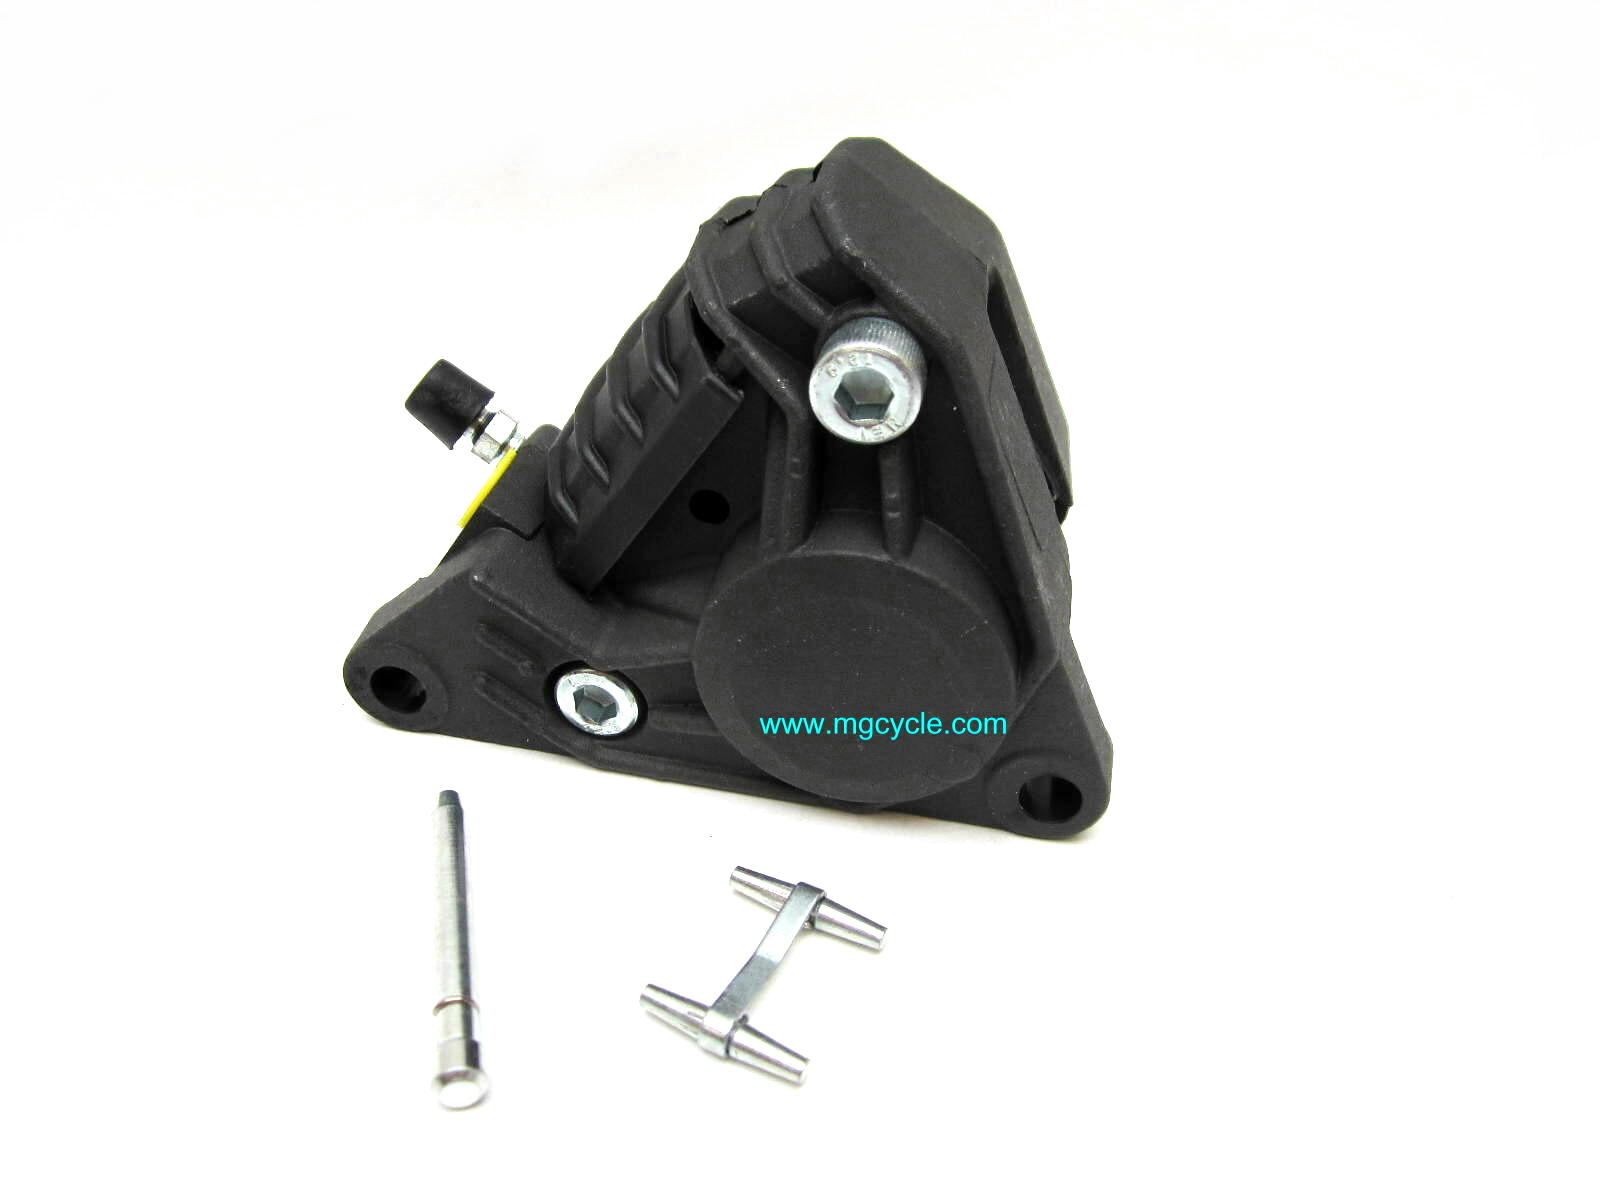 P2 F05 caliper, left side behind fork